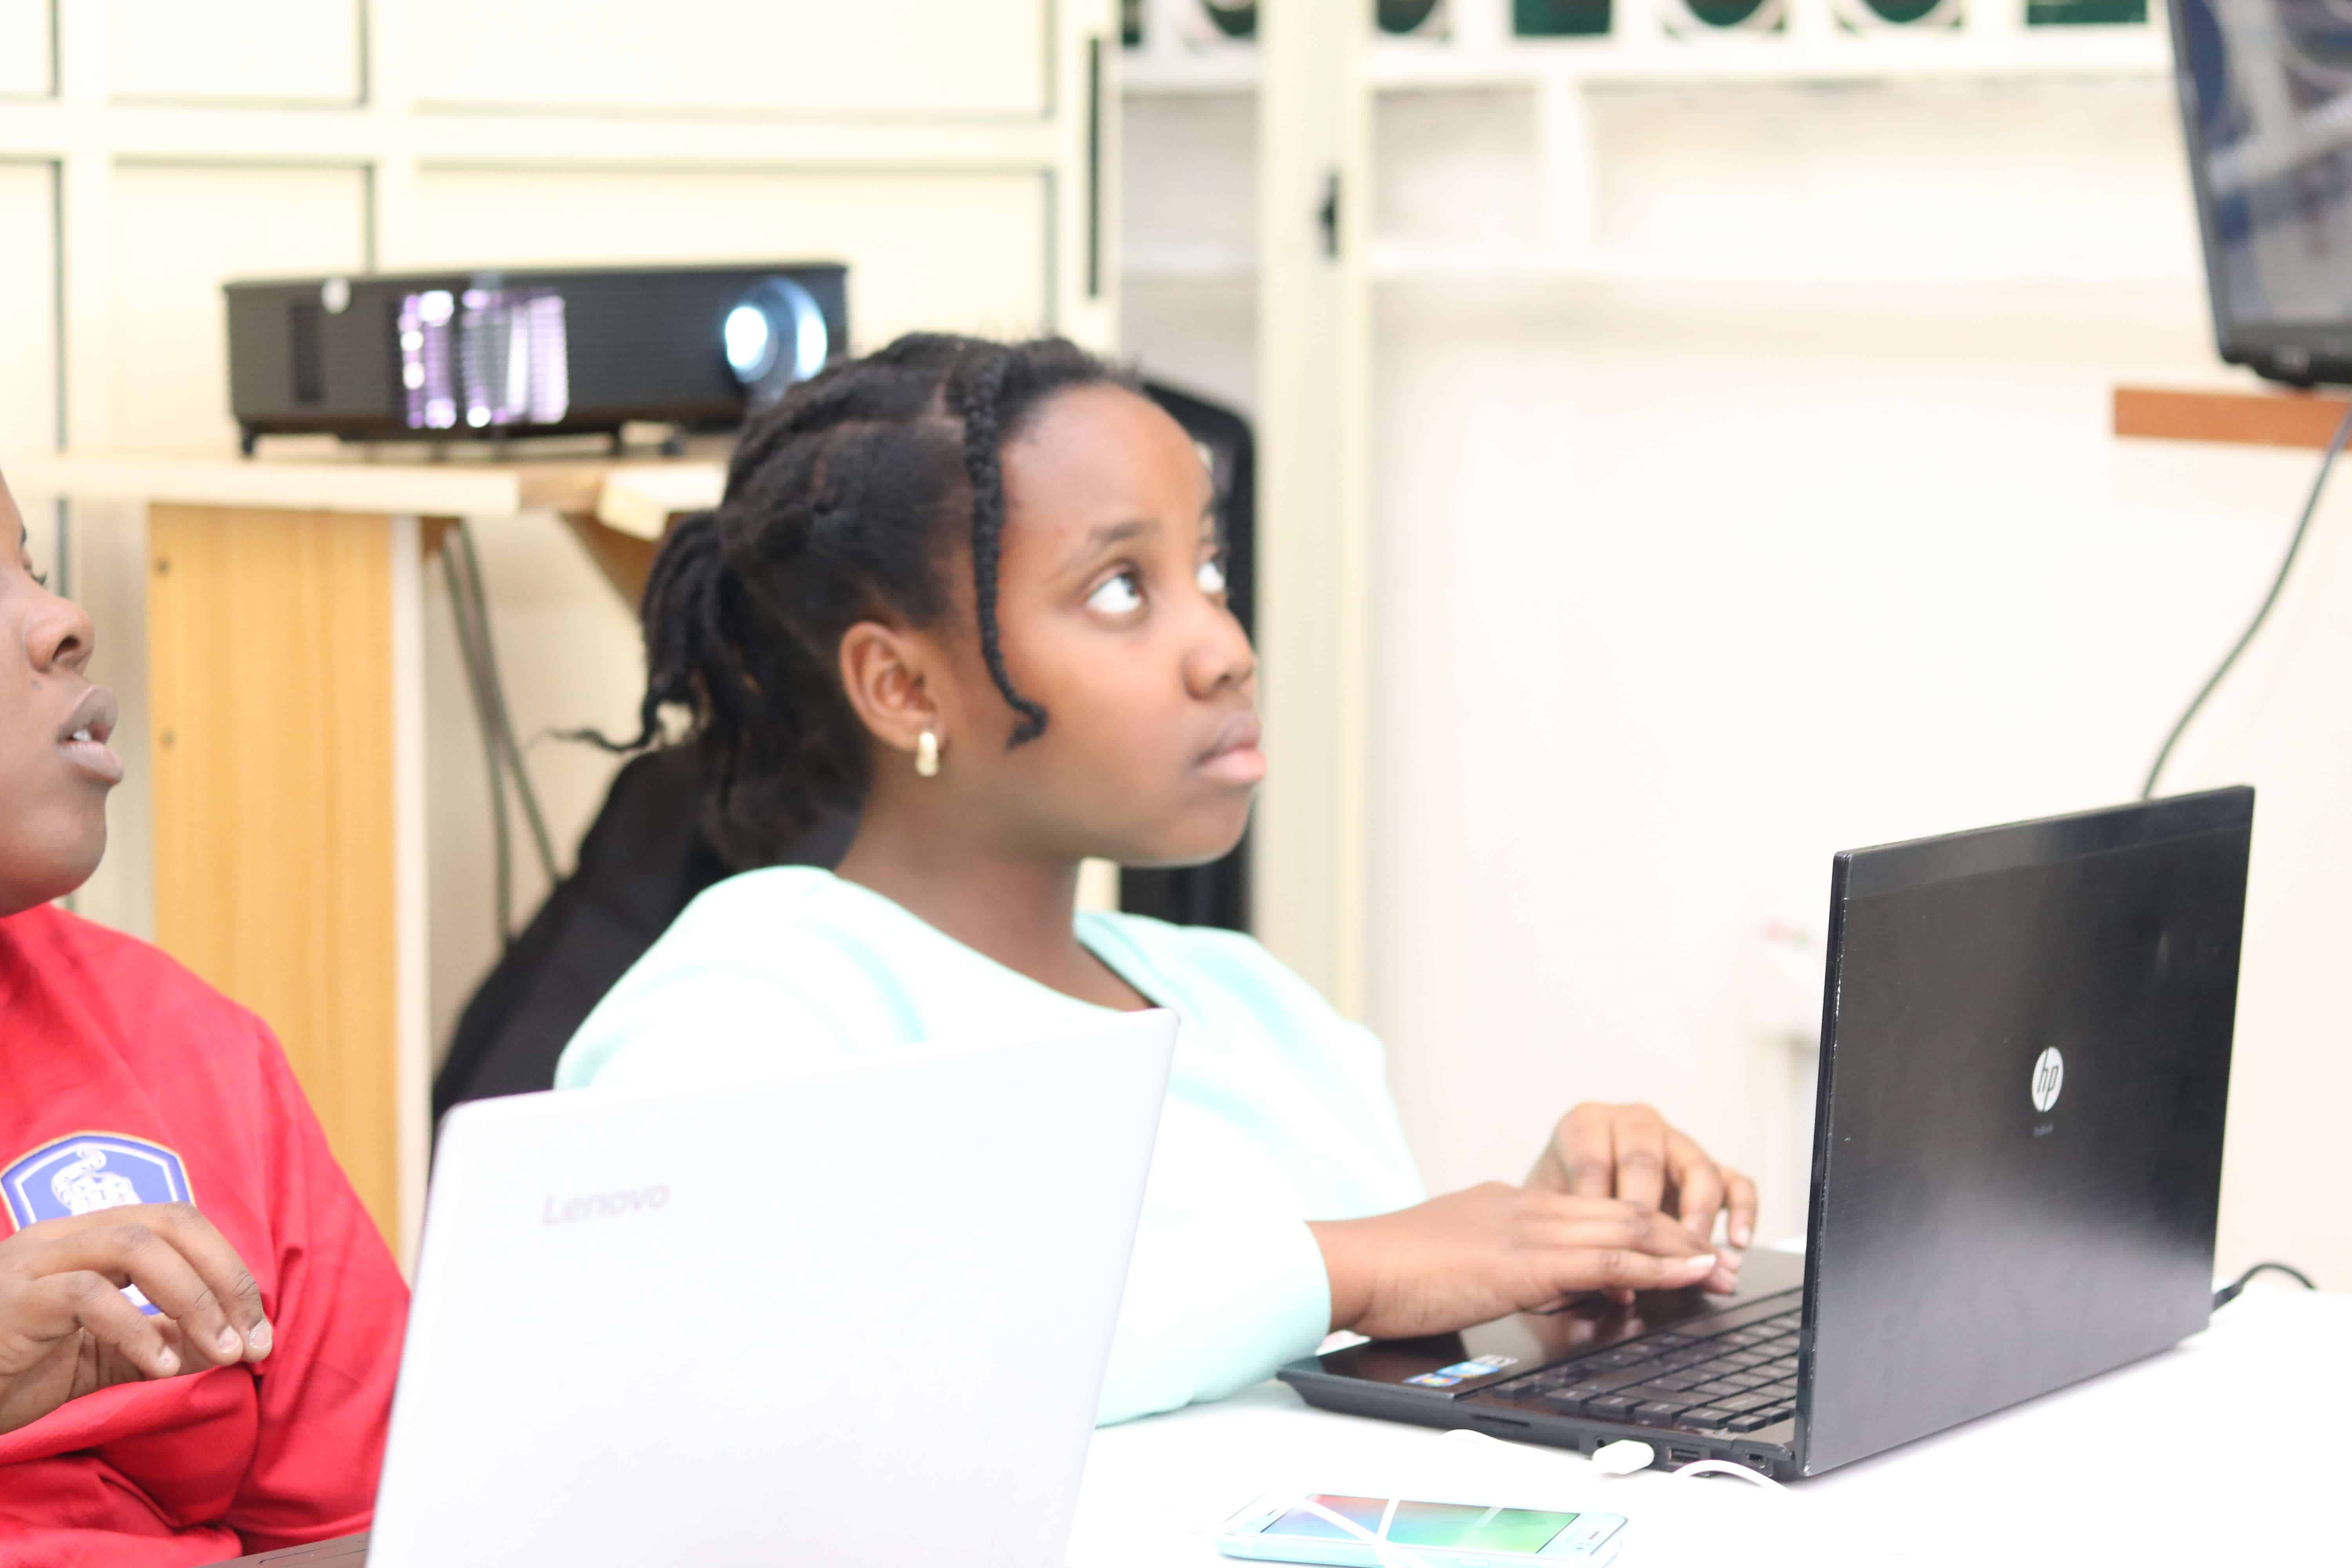 9jacodekids teenage girl coding in Port Harcourt, Nigeria